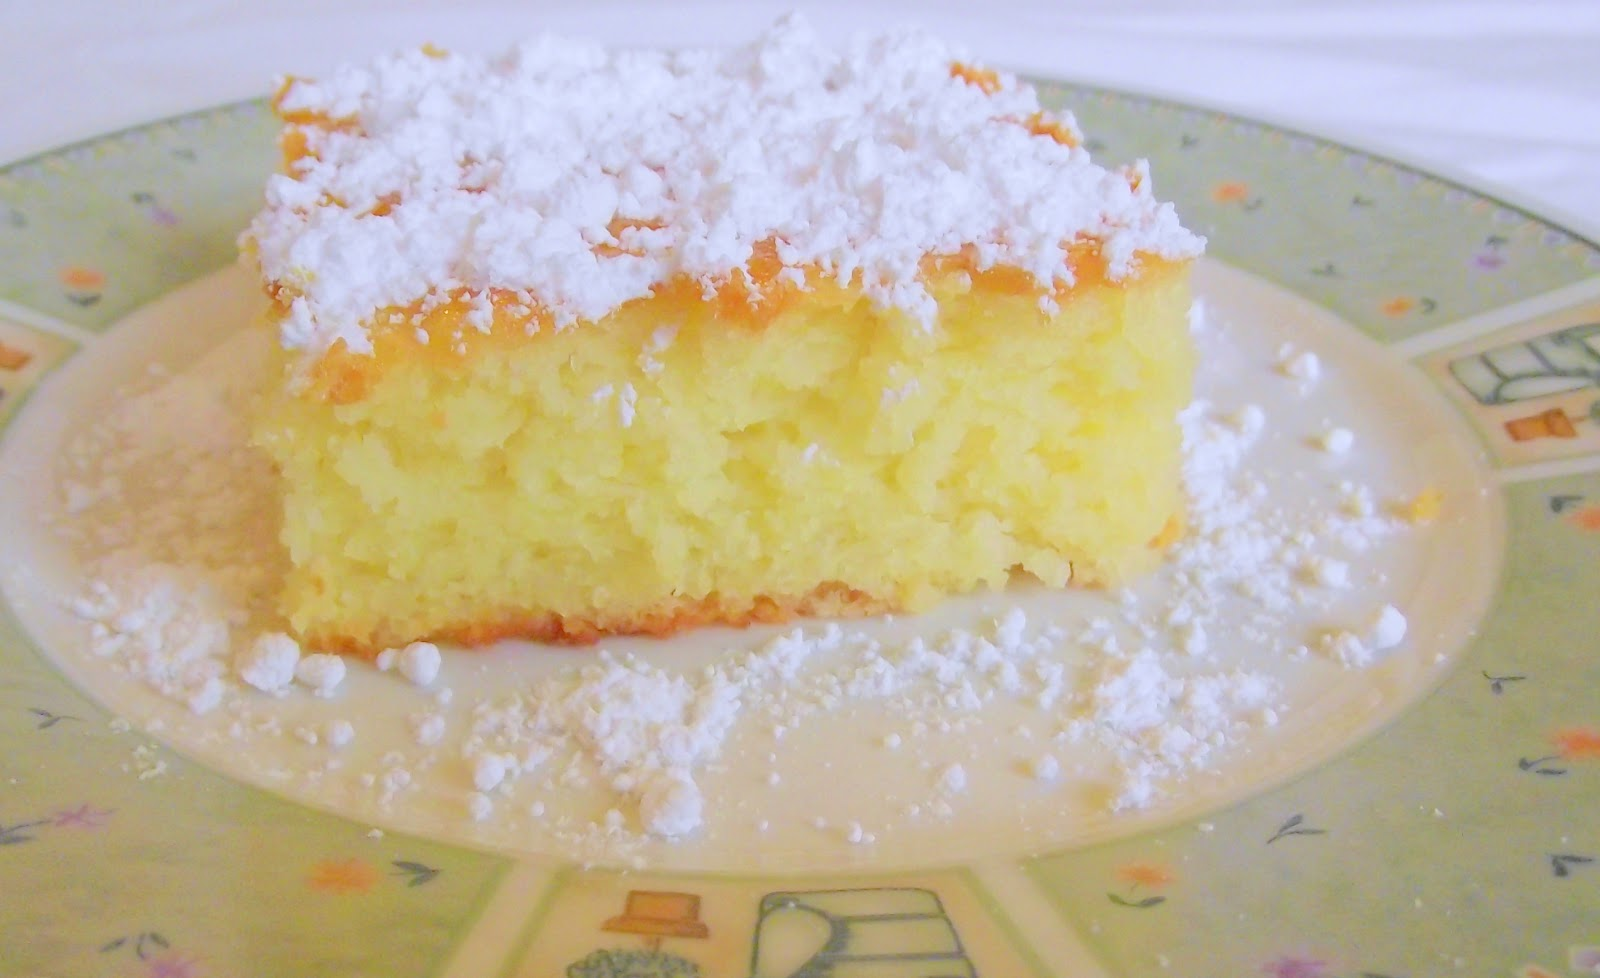 Lemon Cake/Bars - 2 ingredients